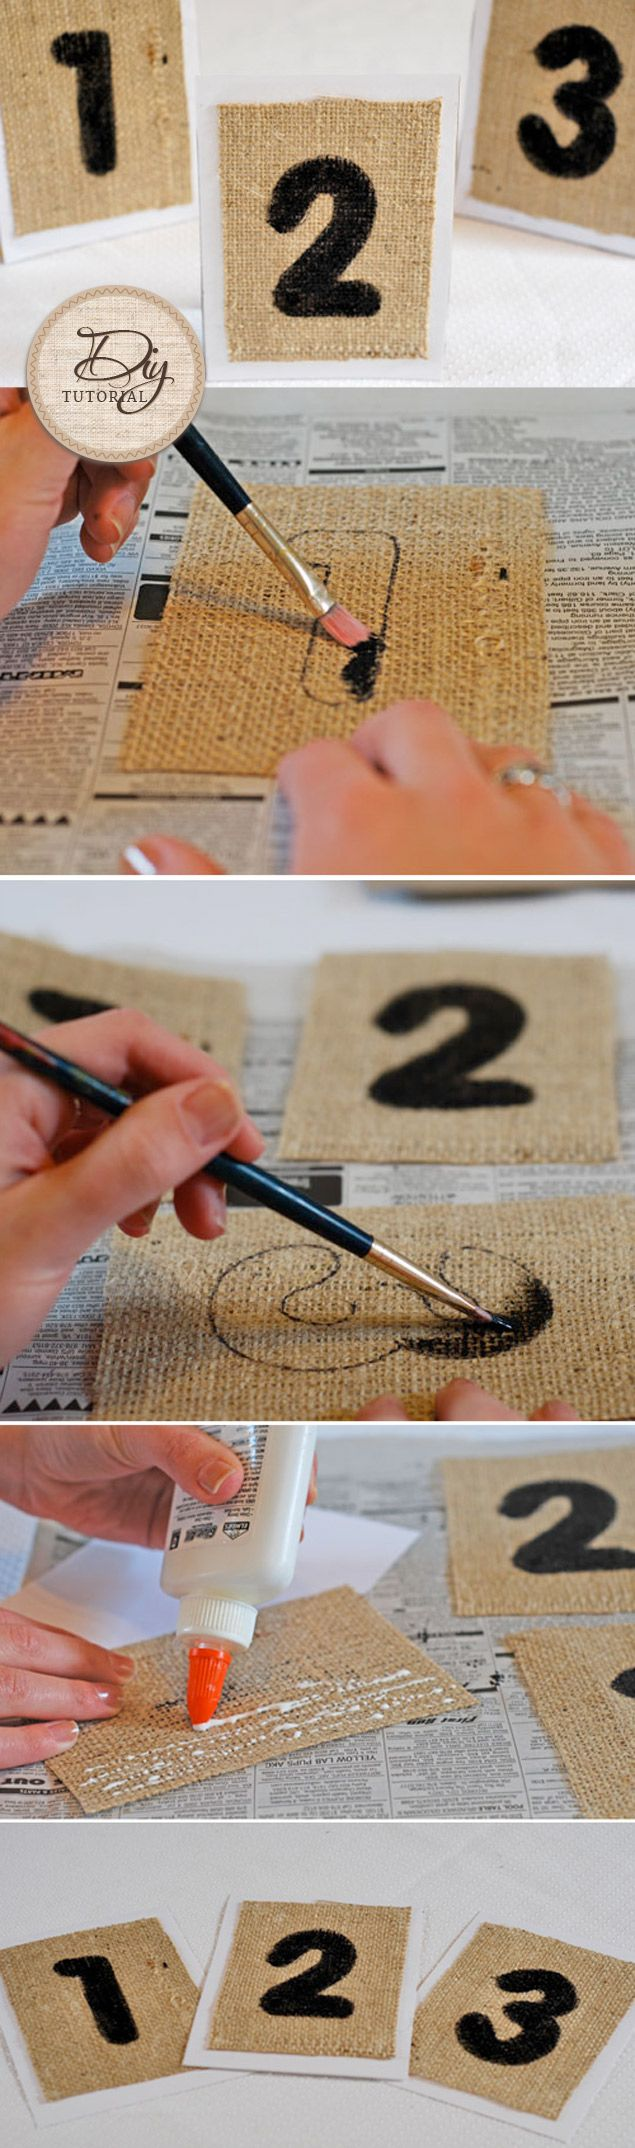 DIY Wedding Projects - Free Standing Burlap Table Numbers!